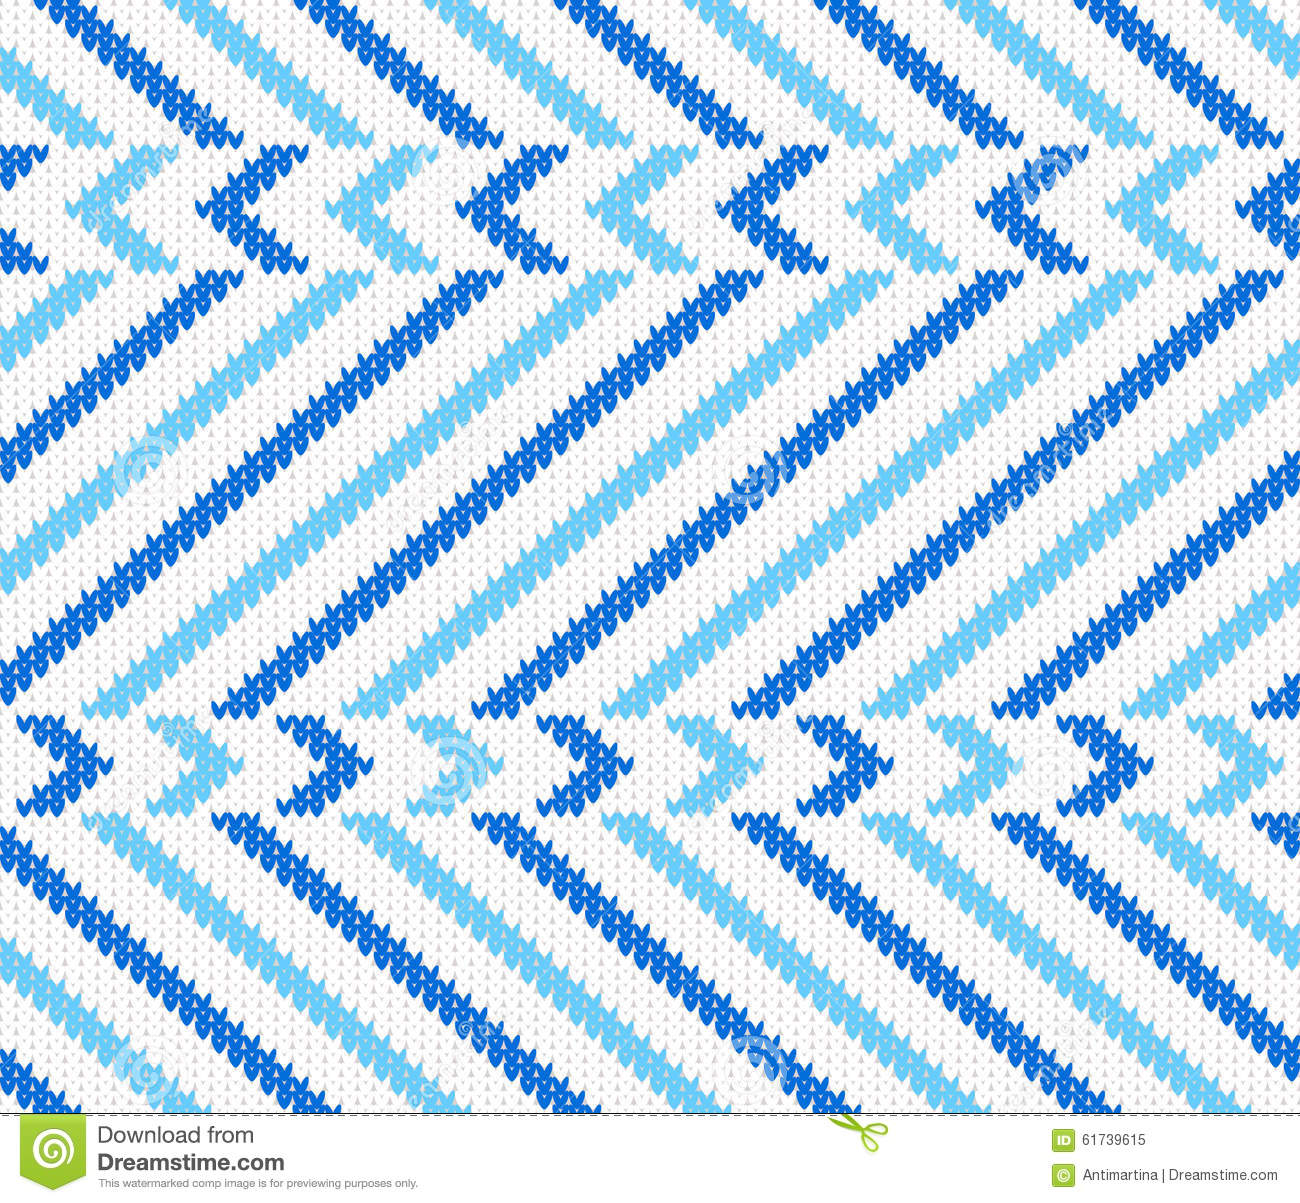 Knitting Vector Patterns : Seamless knitting pattern stock vector illustration of